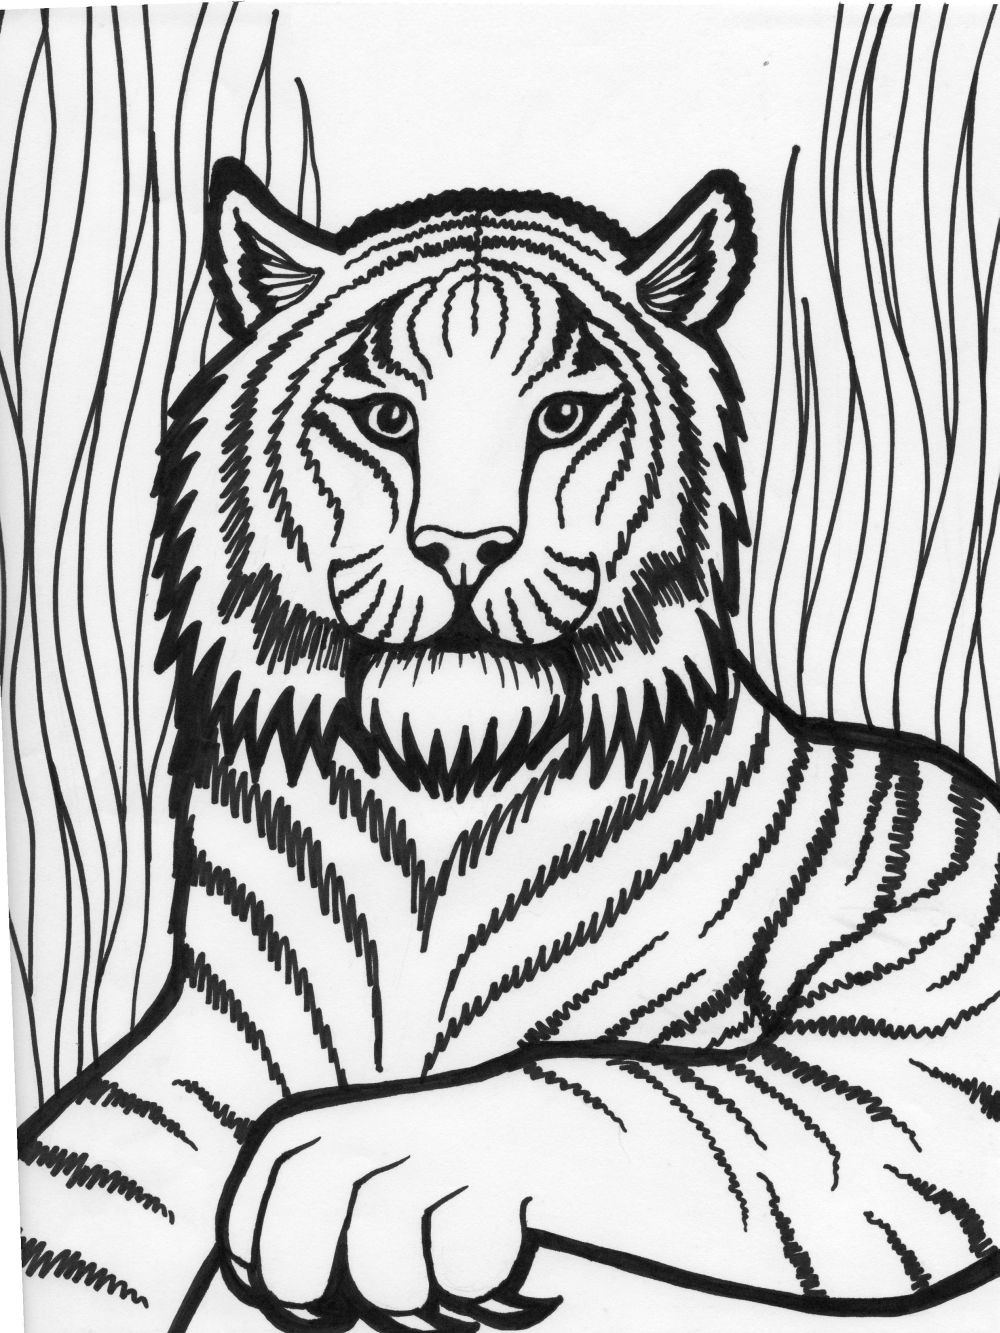 coloring page tiger - Coloring Pages Of Tigers